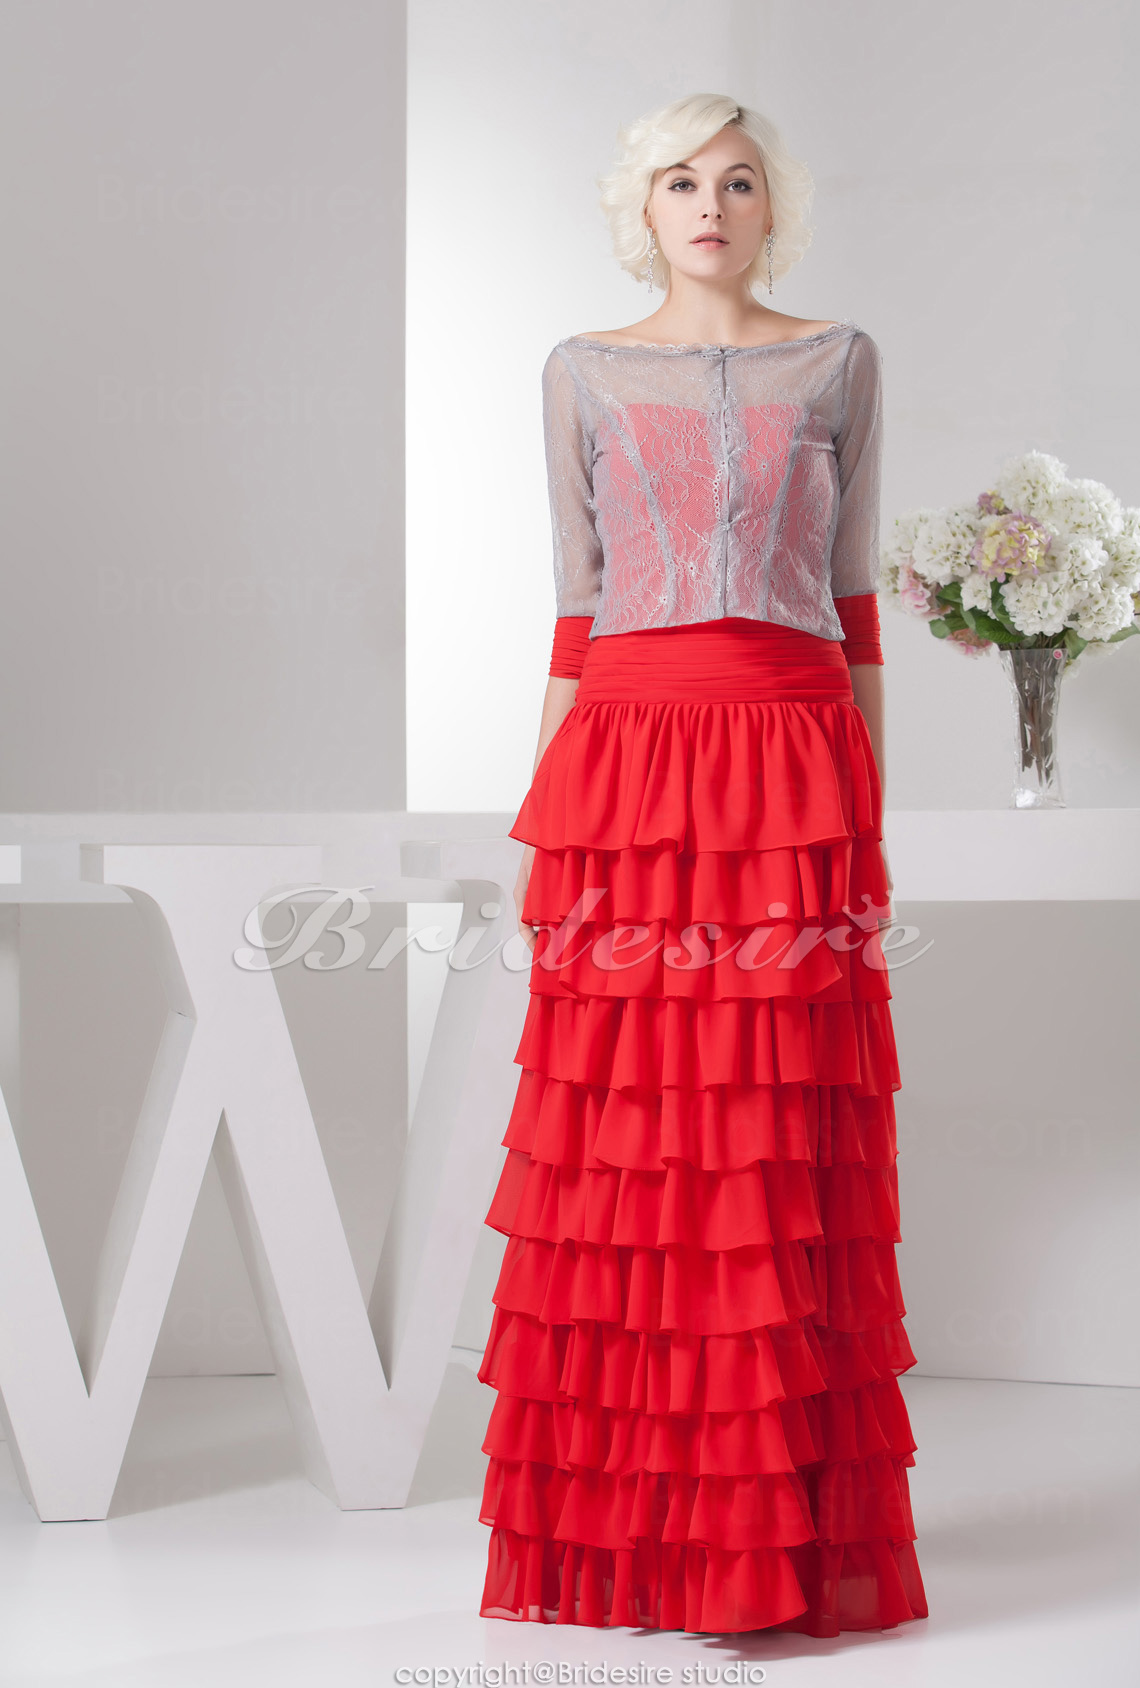 Sheath/Column Bateau Floor-length 3/4 Length Sleeve Chiffon Satin Dress